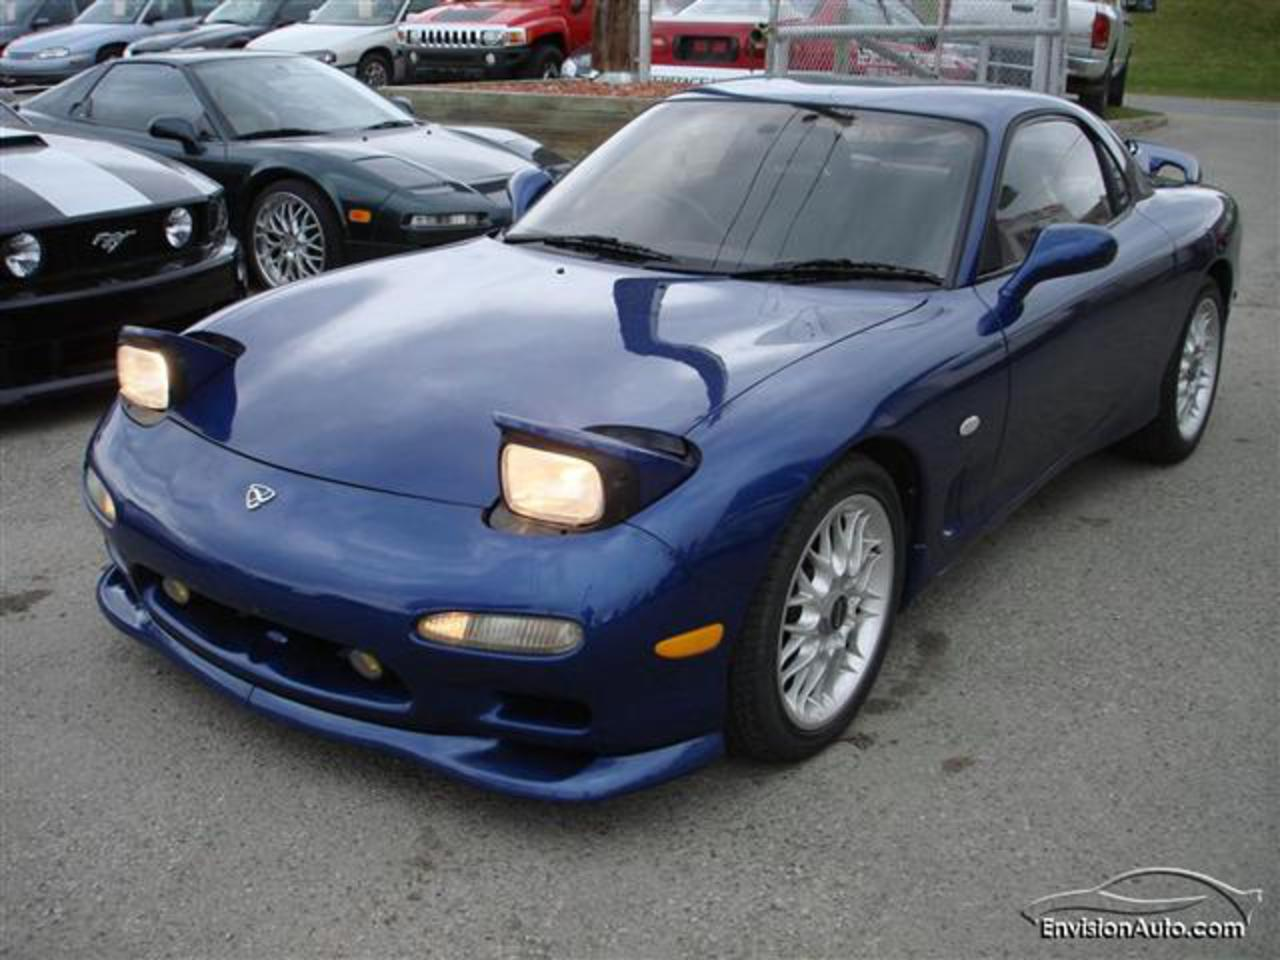 1992 Mazda RX-7 Twin Turbo 5 Speed Vehicle Specification